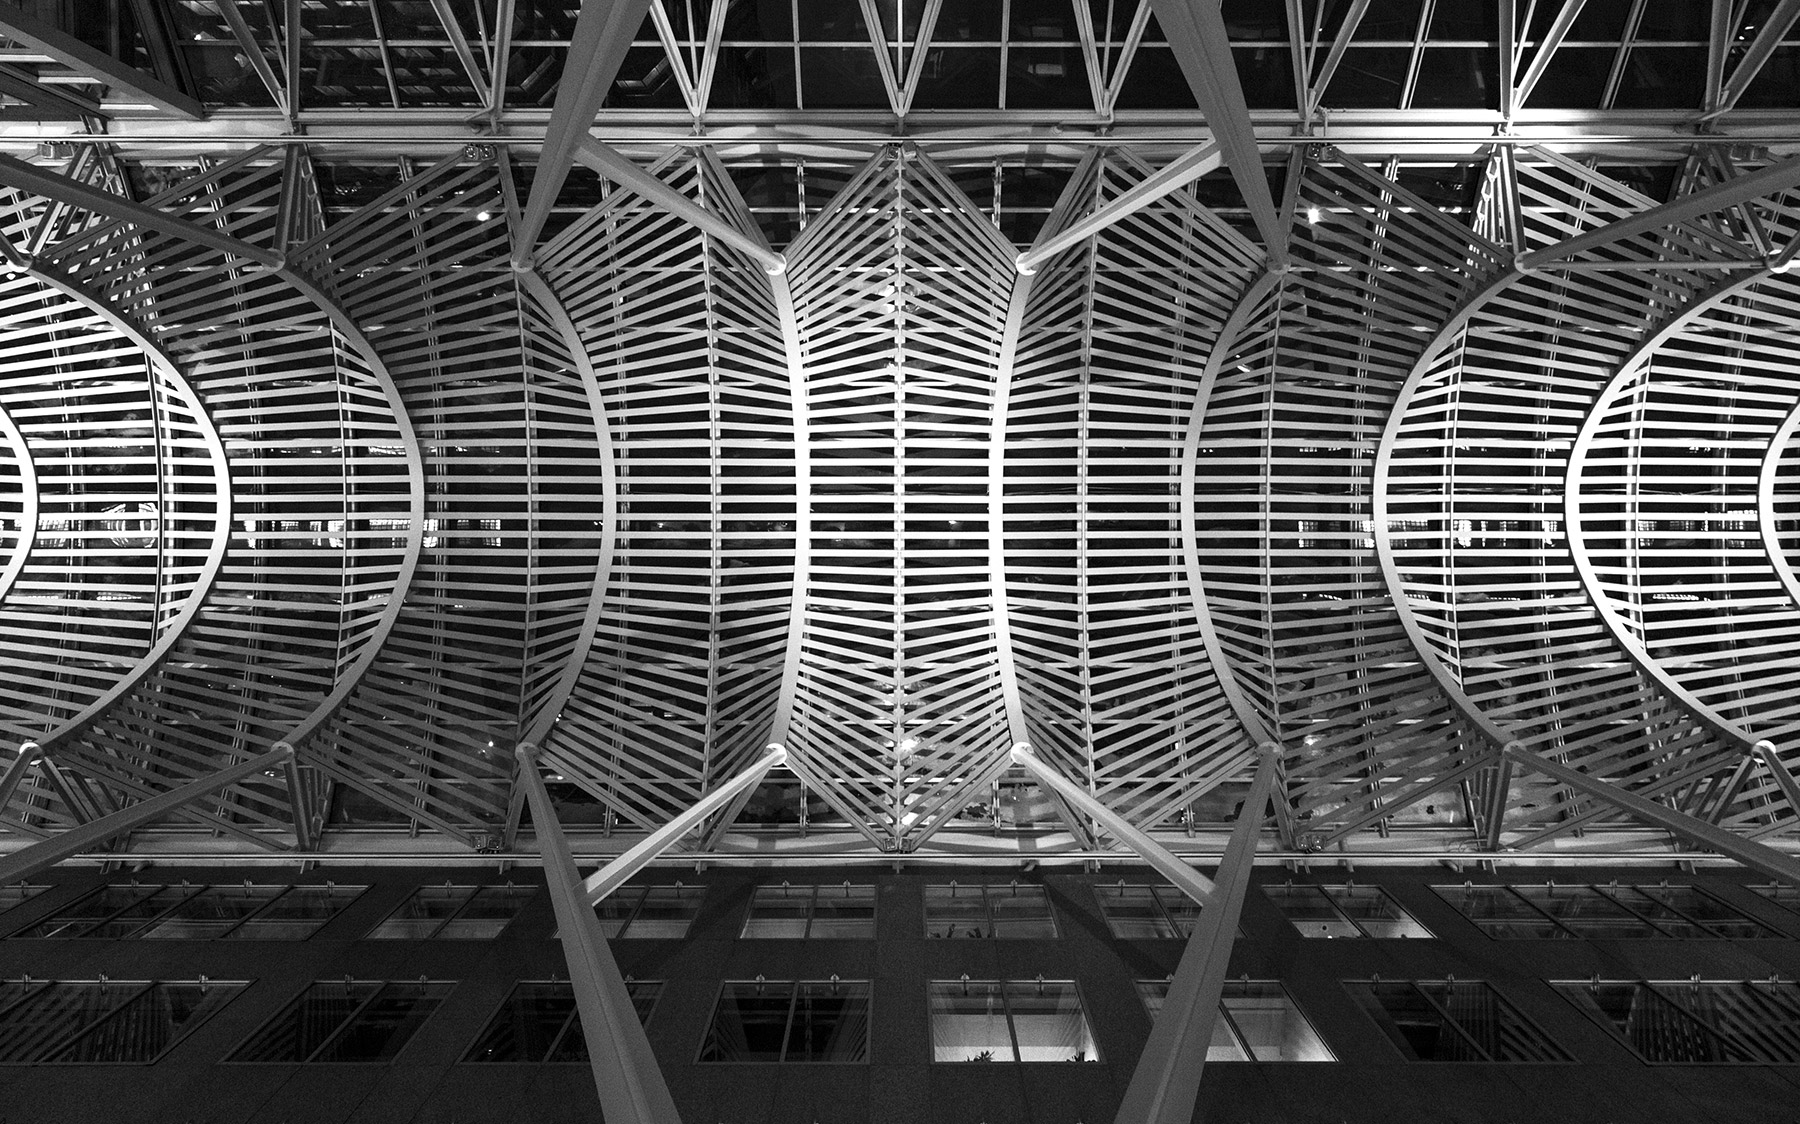 20150211. Below the metal canopy of the Allen Lambert Galleria a